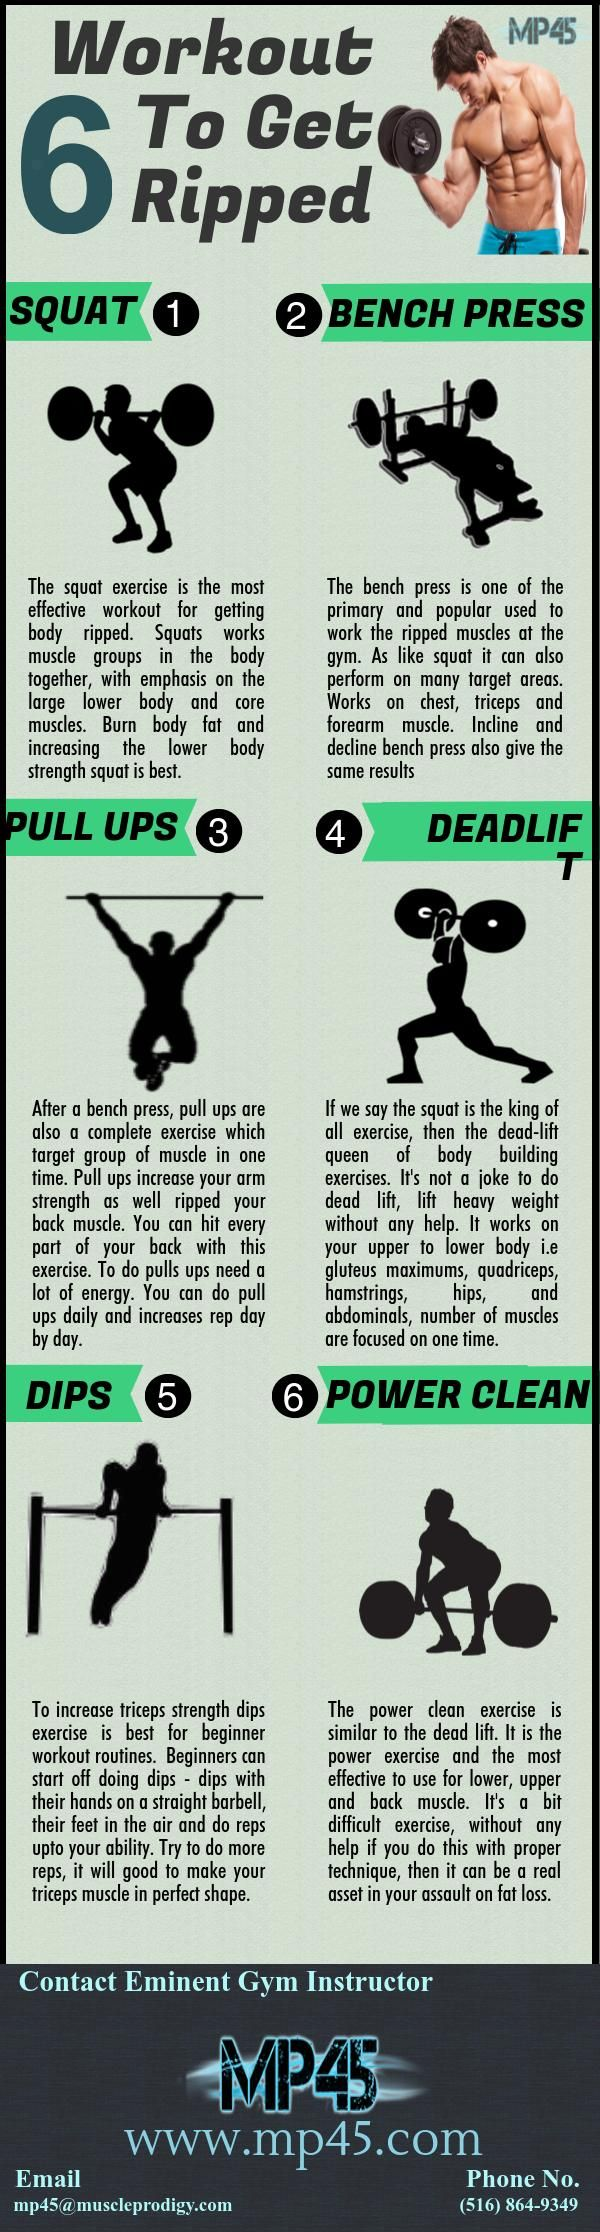 Ultimate Workout Routine To Get Ripped